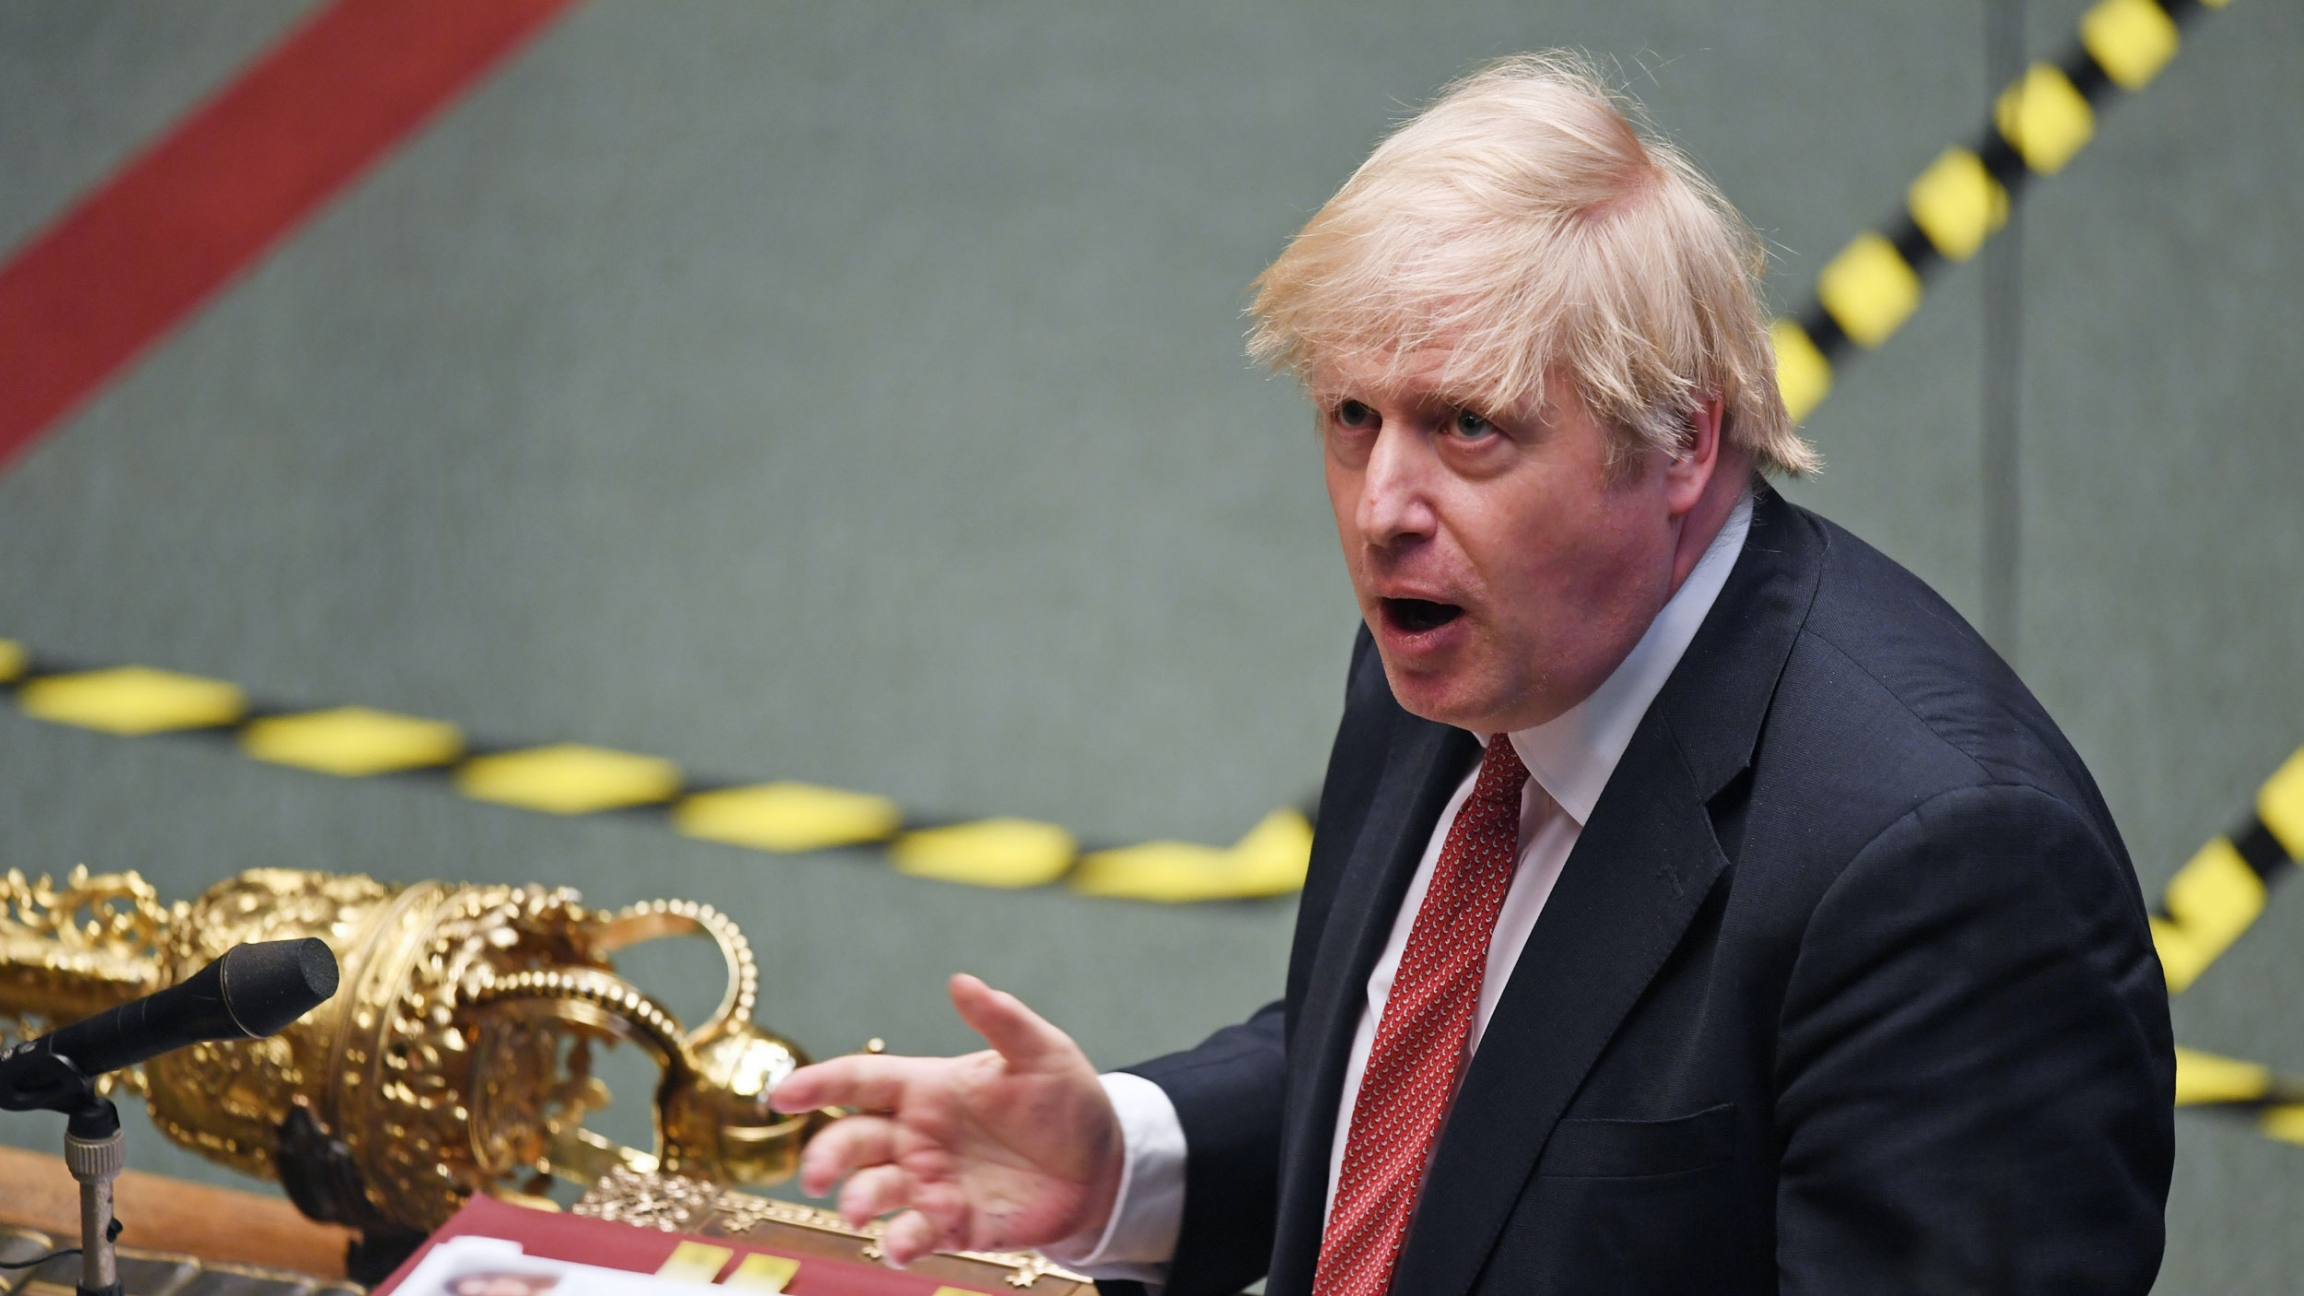 Britain's Prime Minister Boris Johnson is shown in a photograph from above standing at a podium with his hand outstretched.